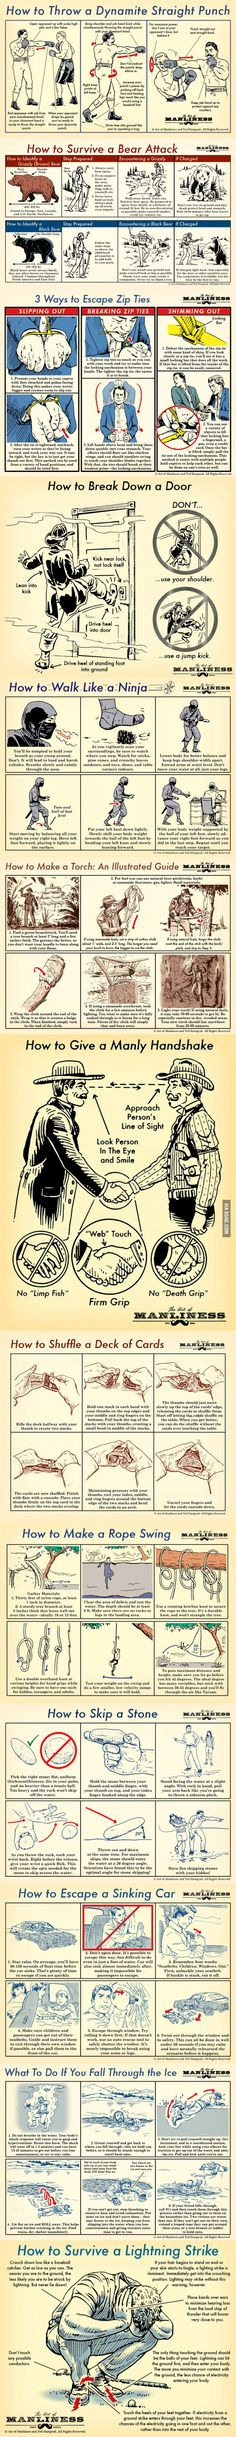 Manly Skills for men